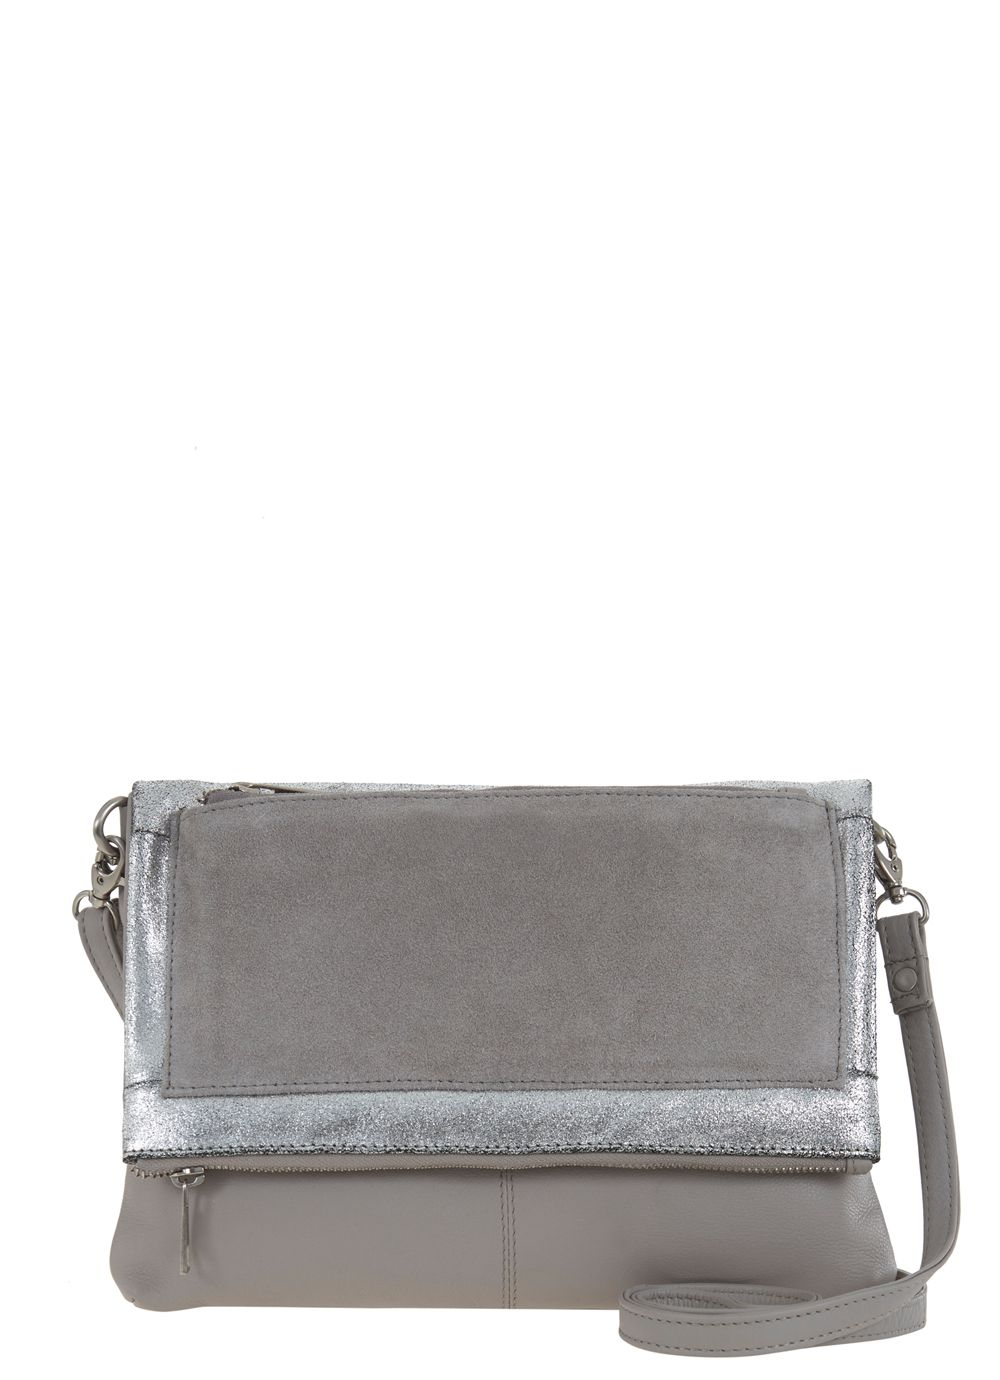 Jessica cross body bag